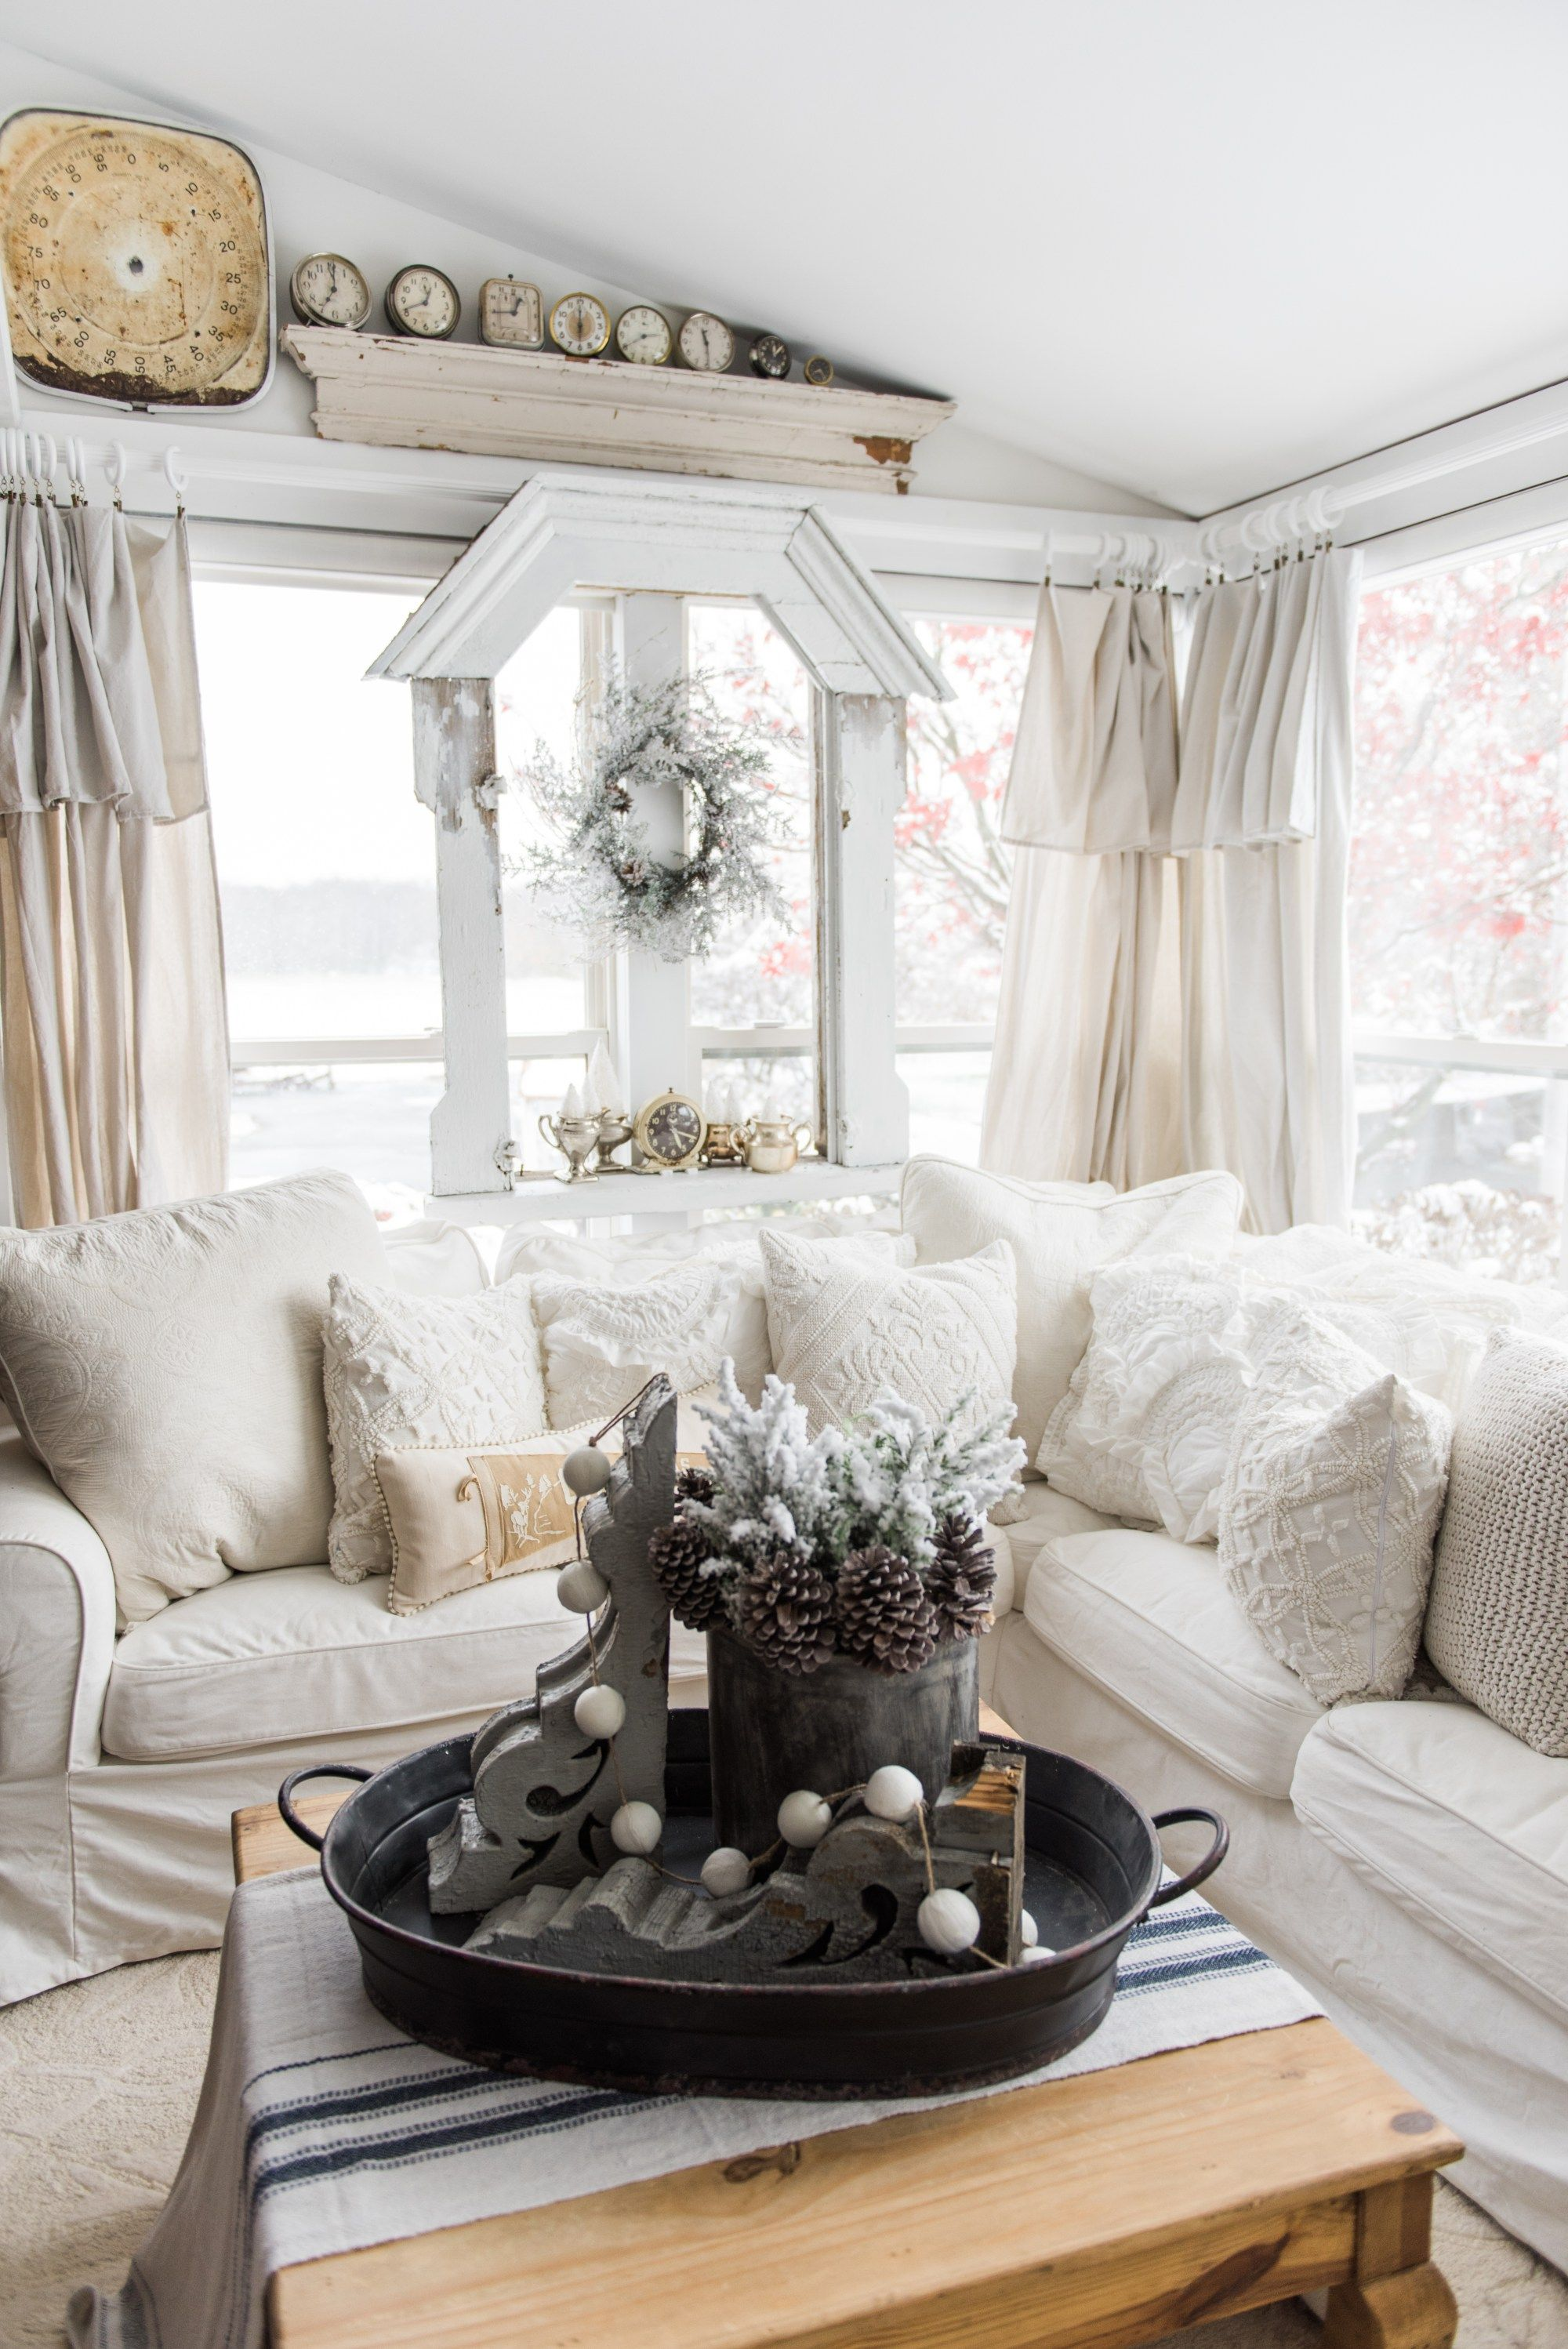 DIY Drop Cloth Curtains In The Sunroom | Home | Pinterest | Cottage ...